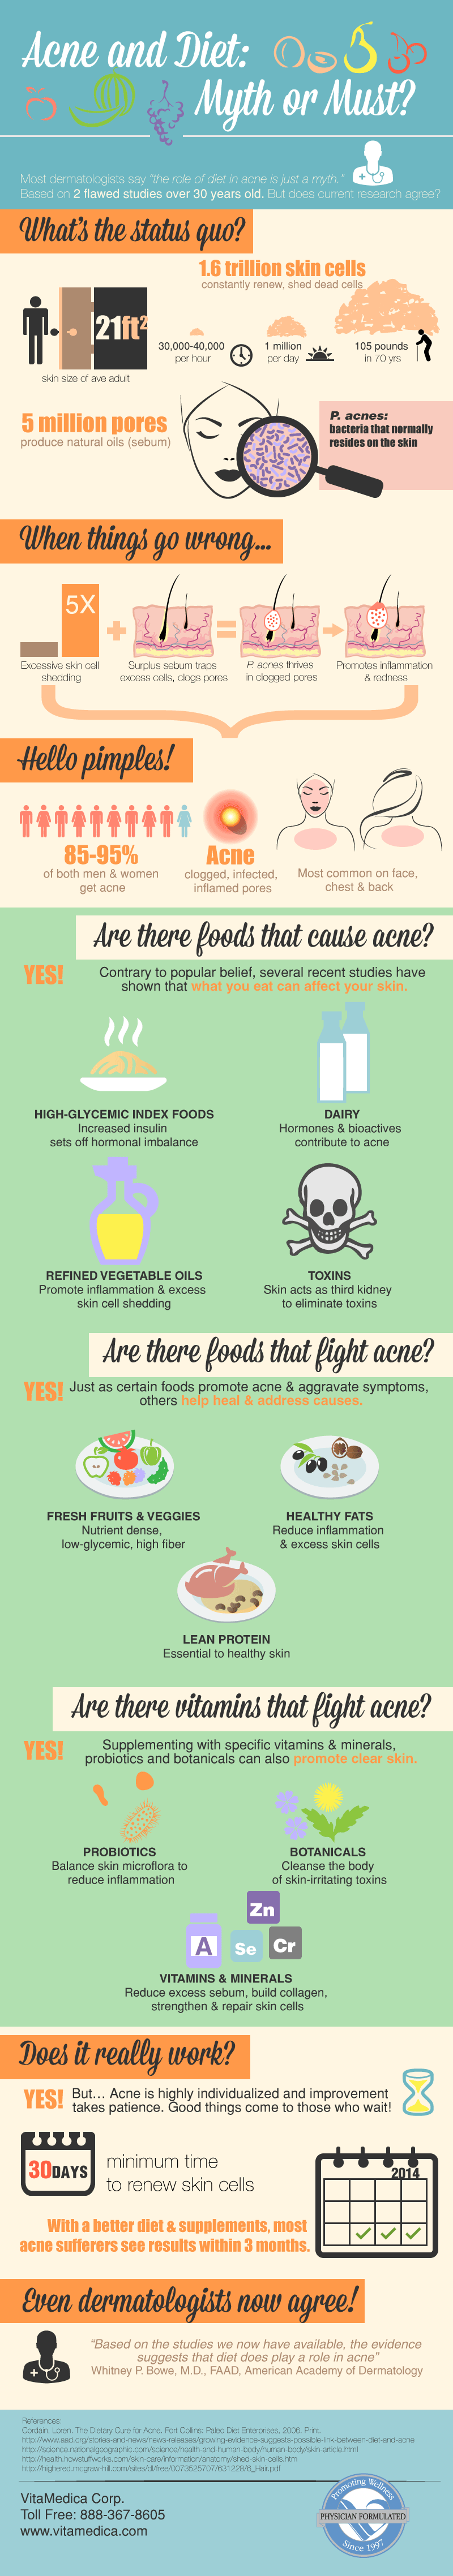 Infographic Acne and Diet - Myth or Must